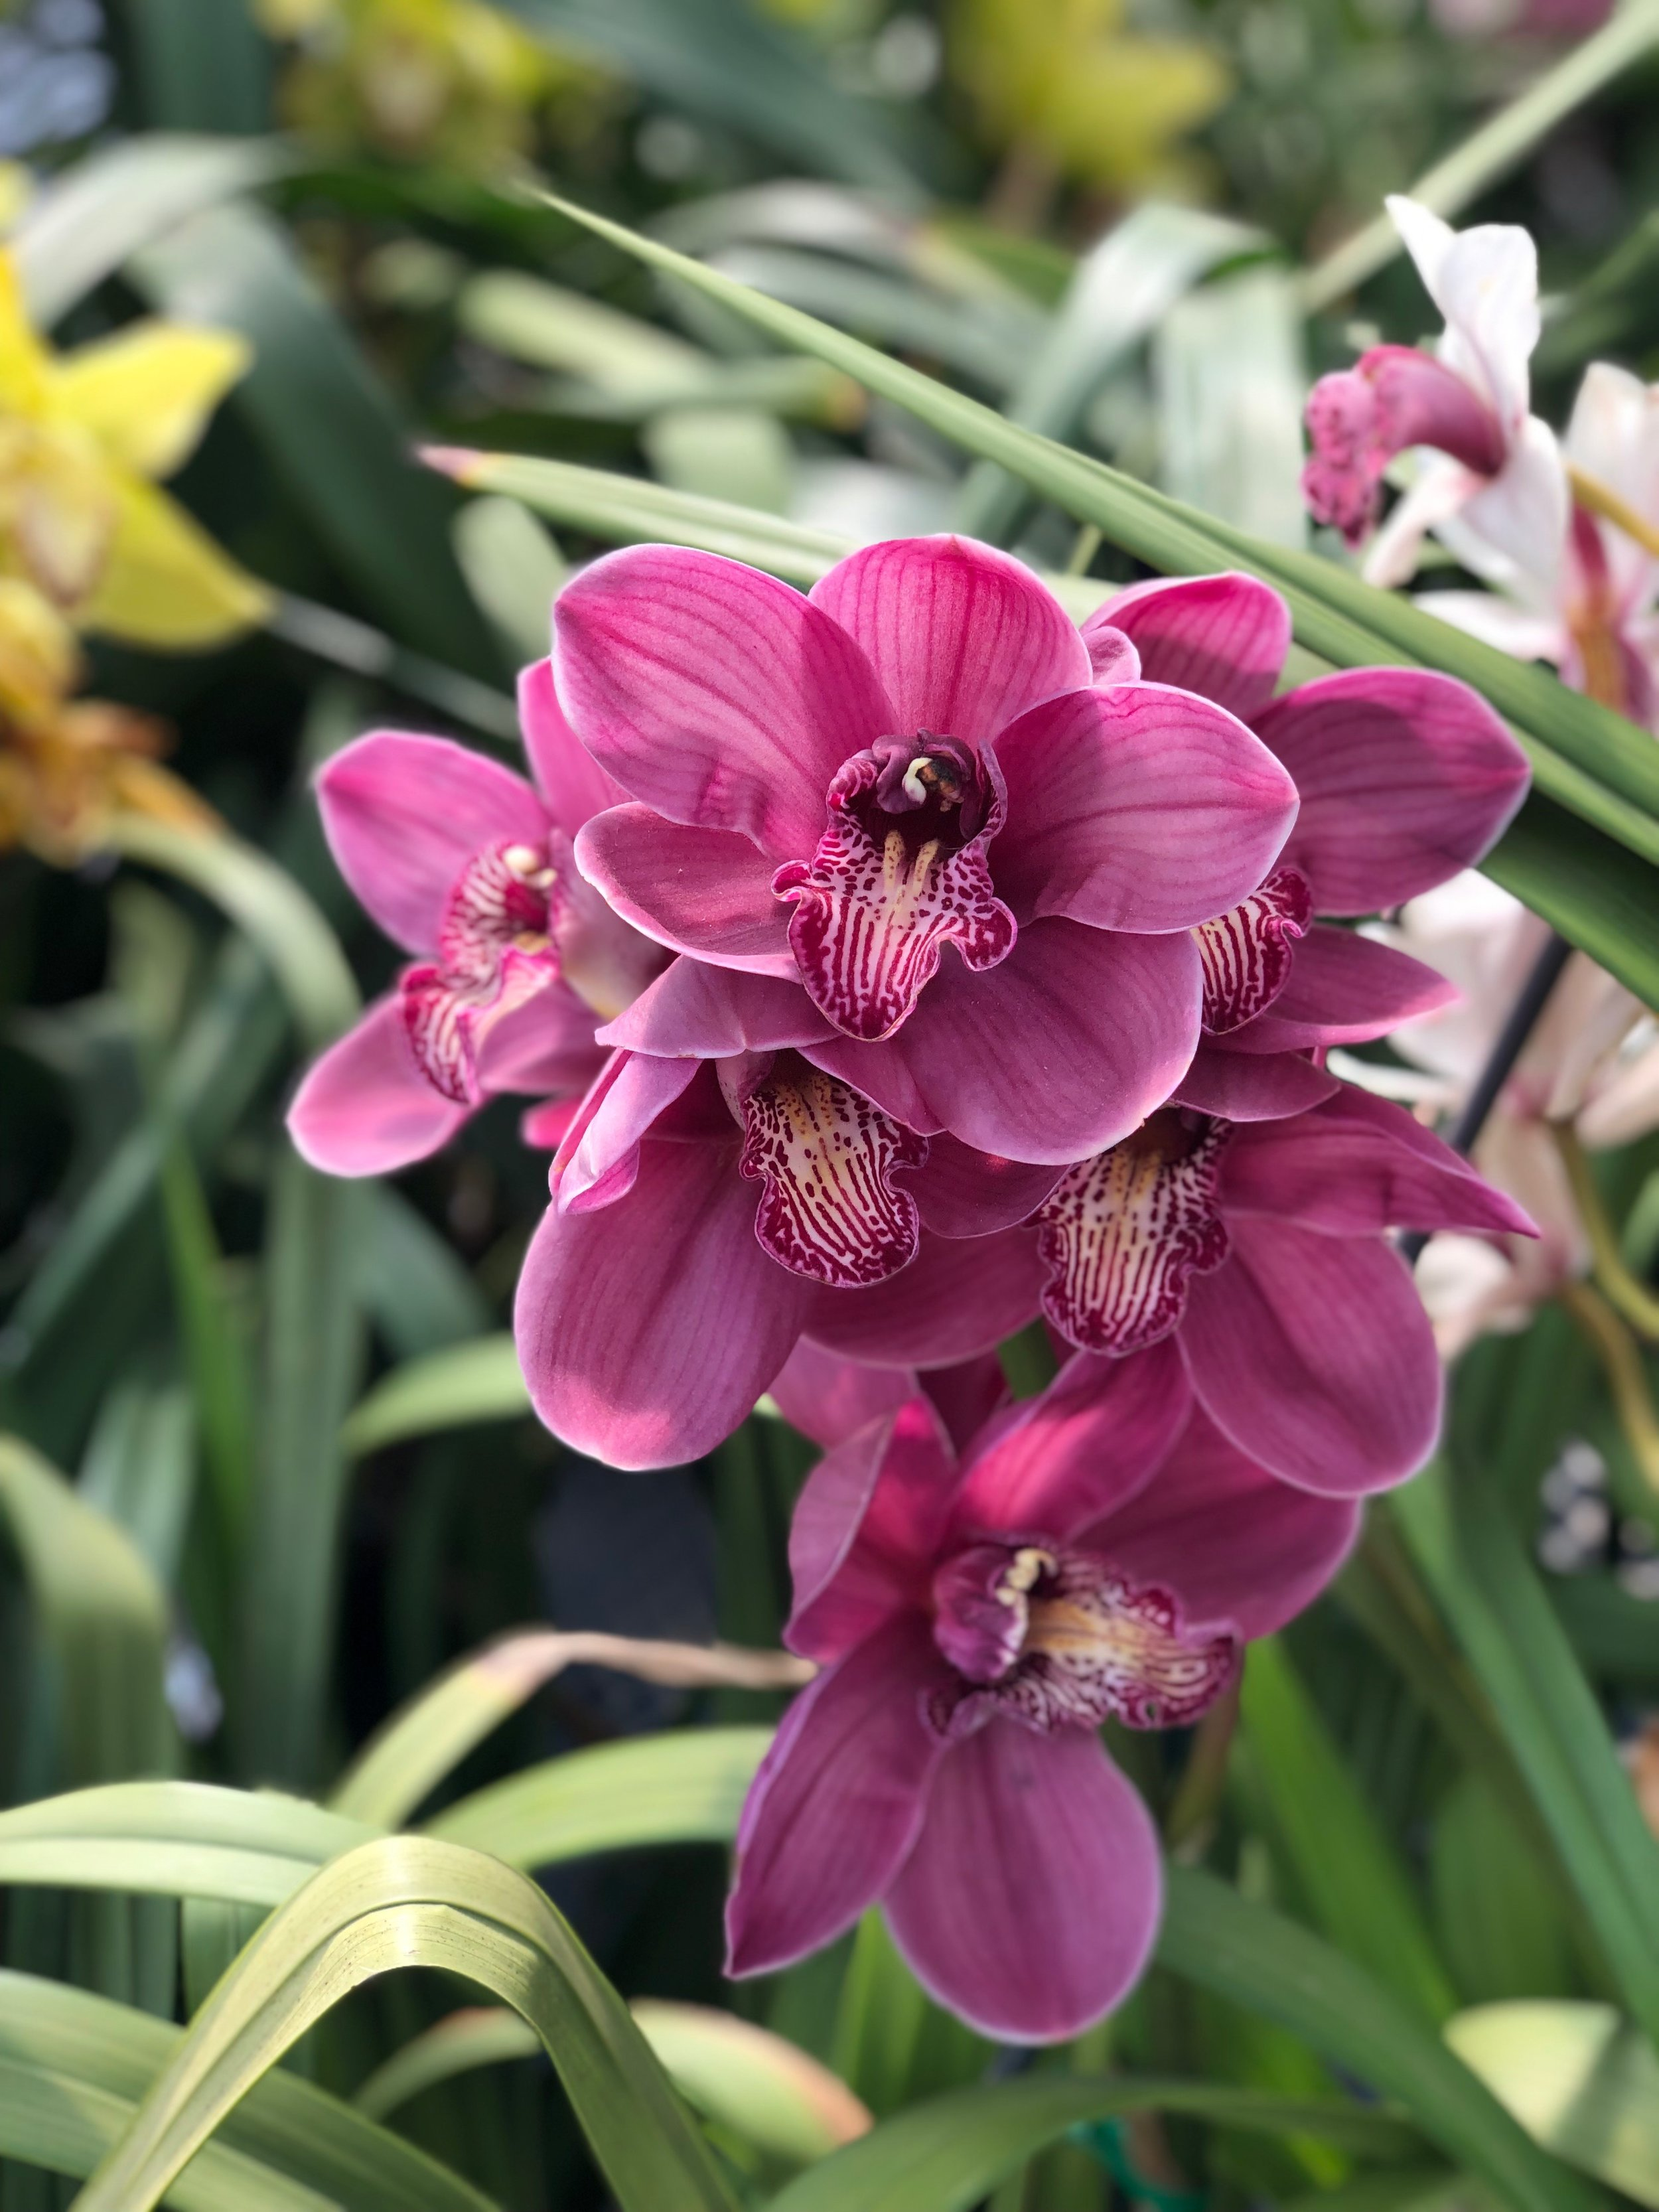 Cymbidium Orchid Greenhouse - Swing by the Cymbidium Orchid Greenhouse to peruse aisles upon aisles of statuesque orchids.